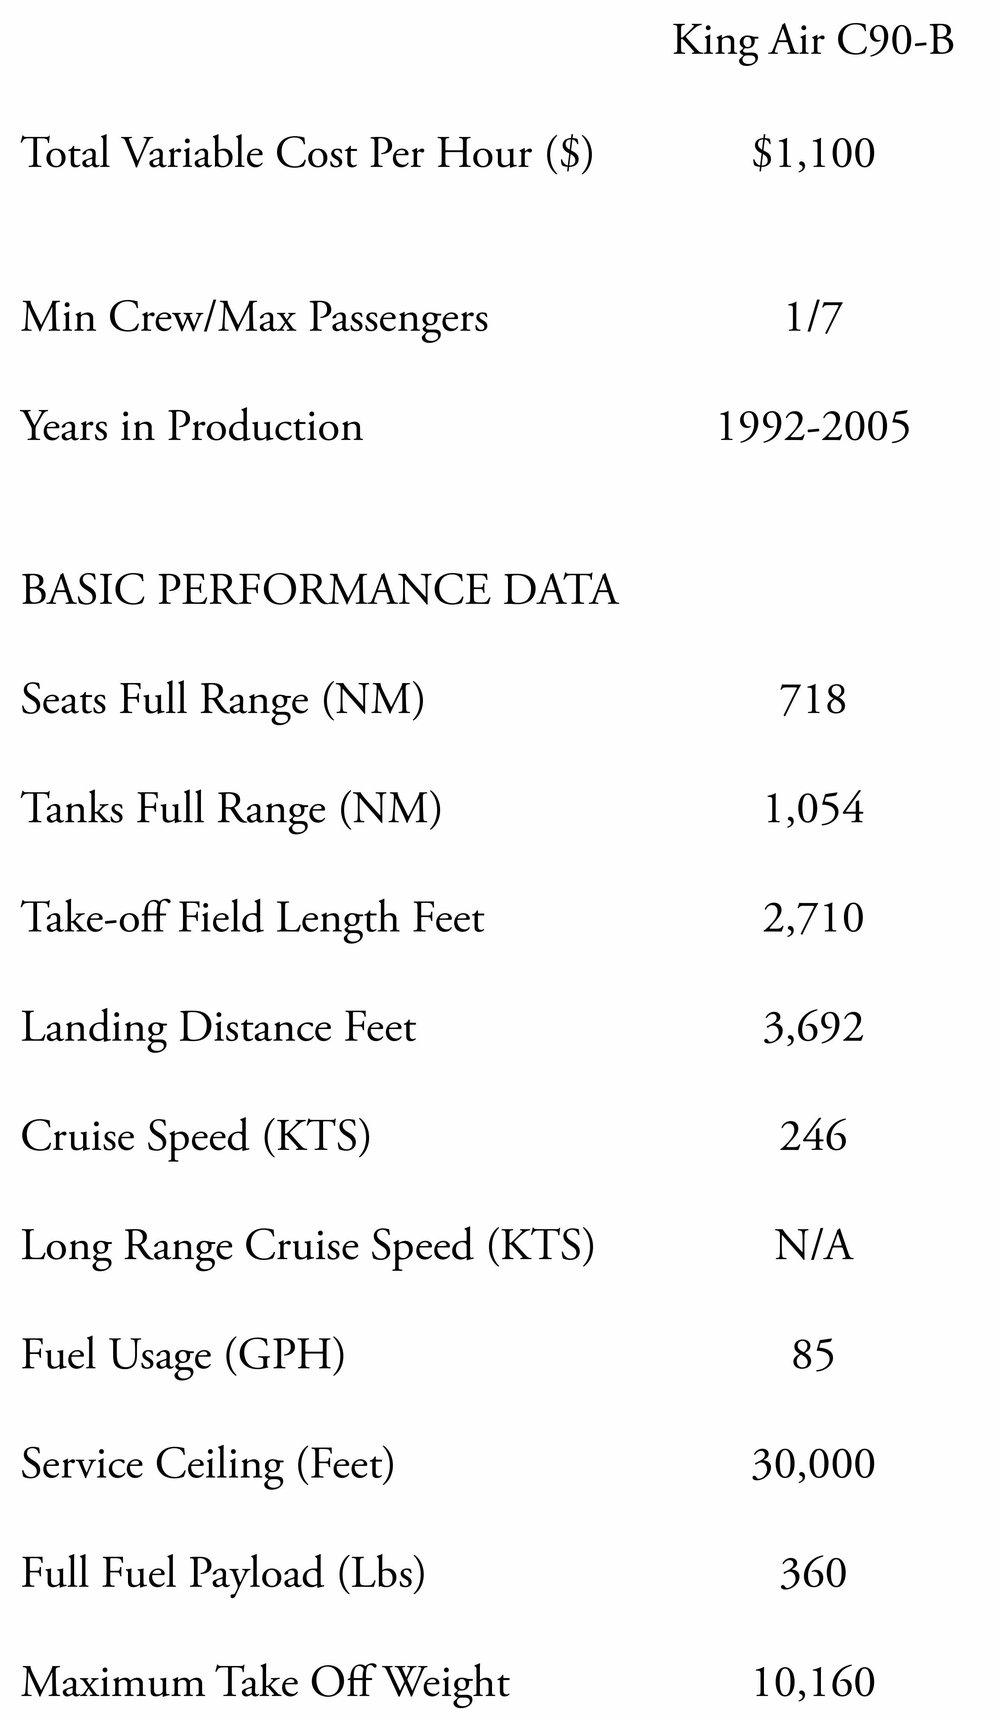 King Air C90 ownership specs. How it compares to other king air 90 models. Seats full range, tanks full range, balanced field take-off, years in production and minimum crew to passenger ratio.